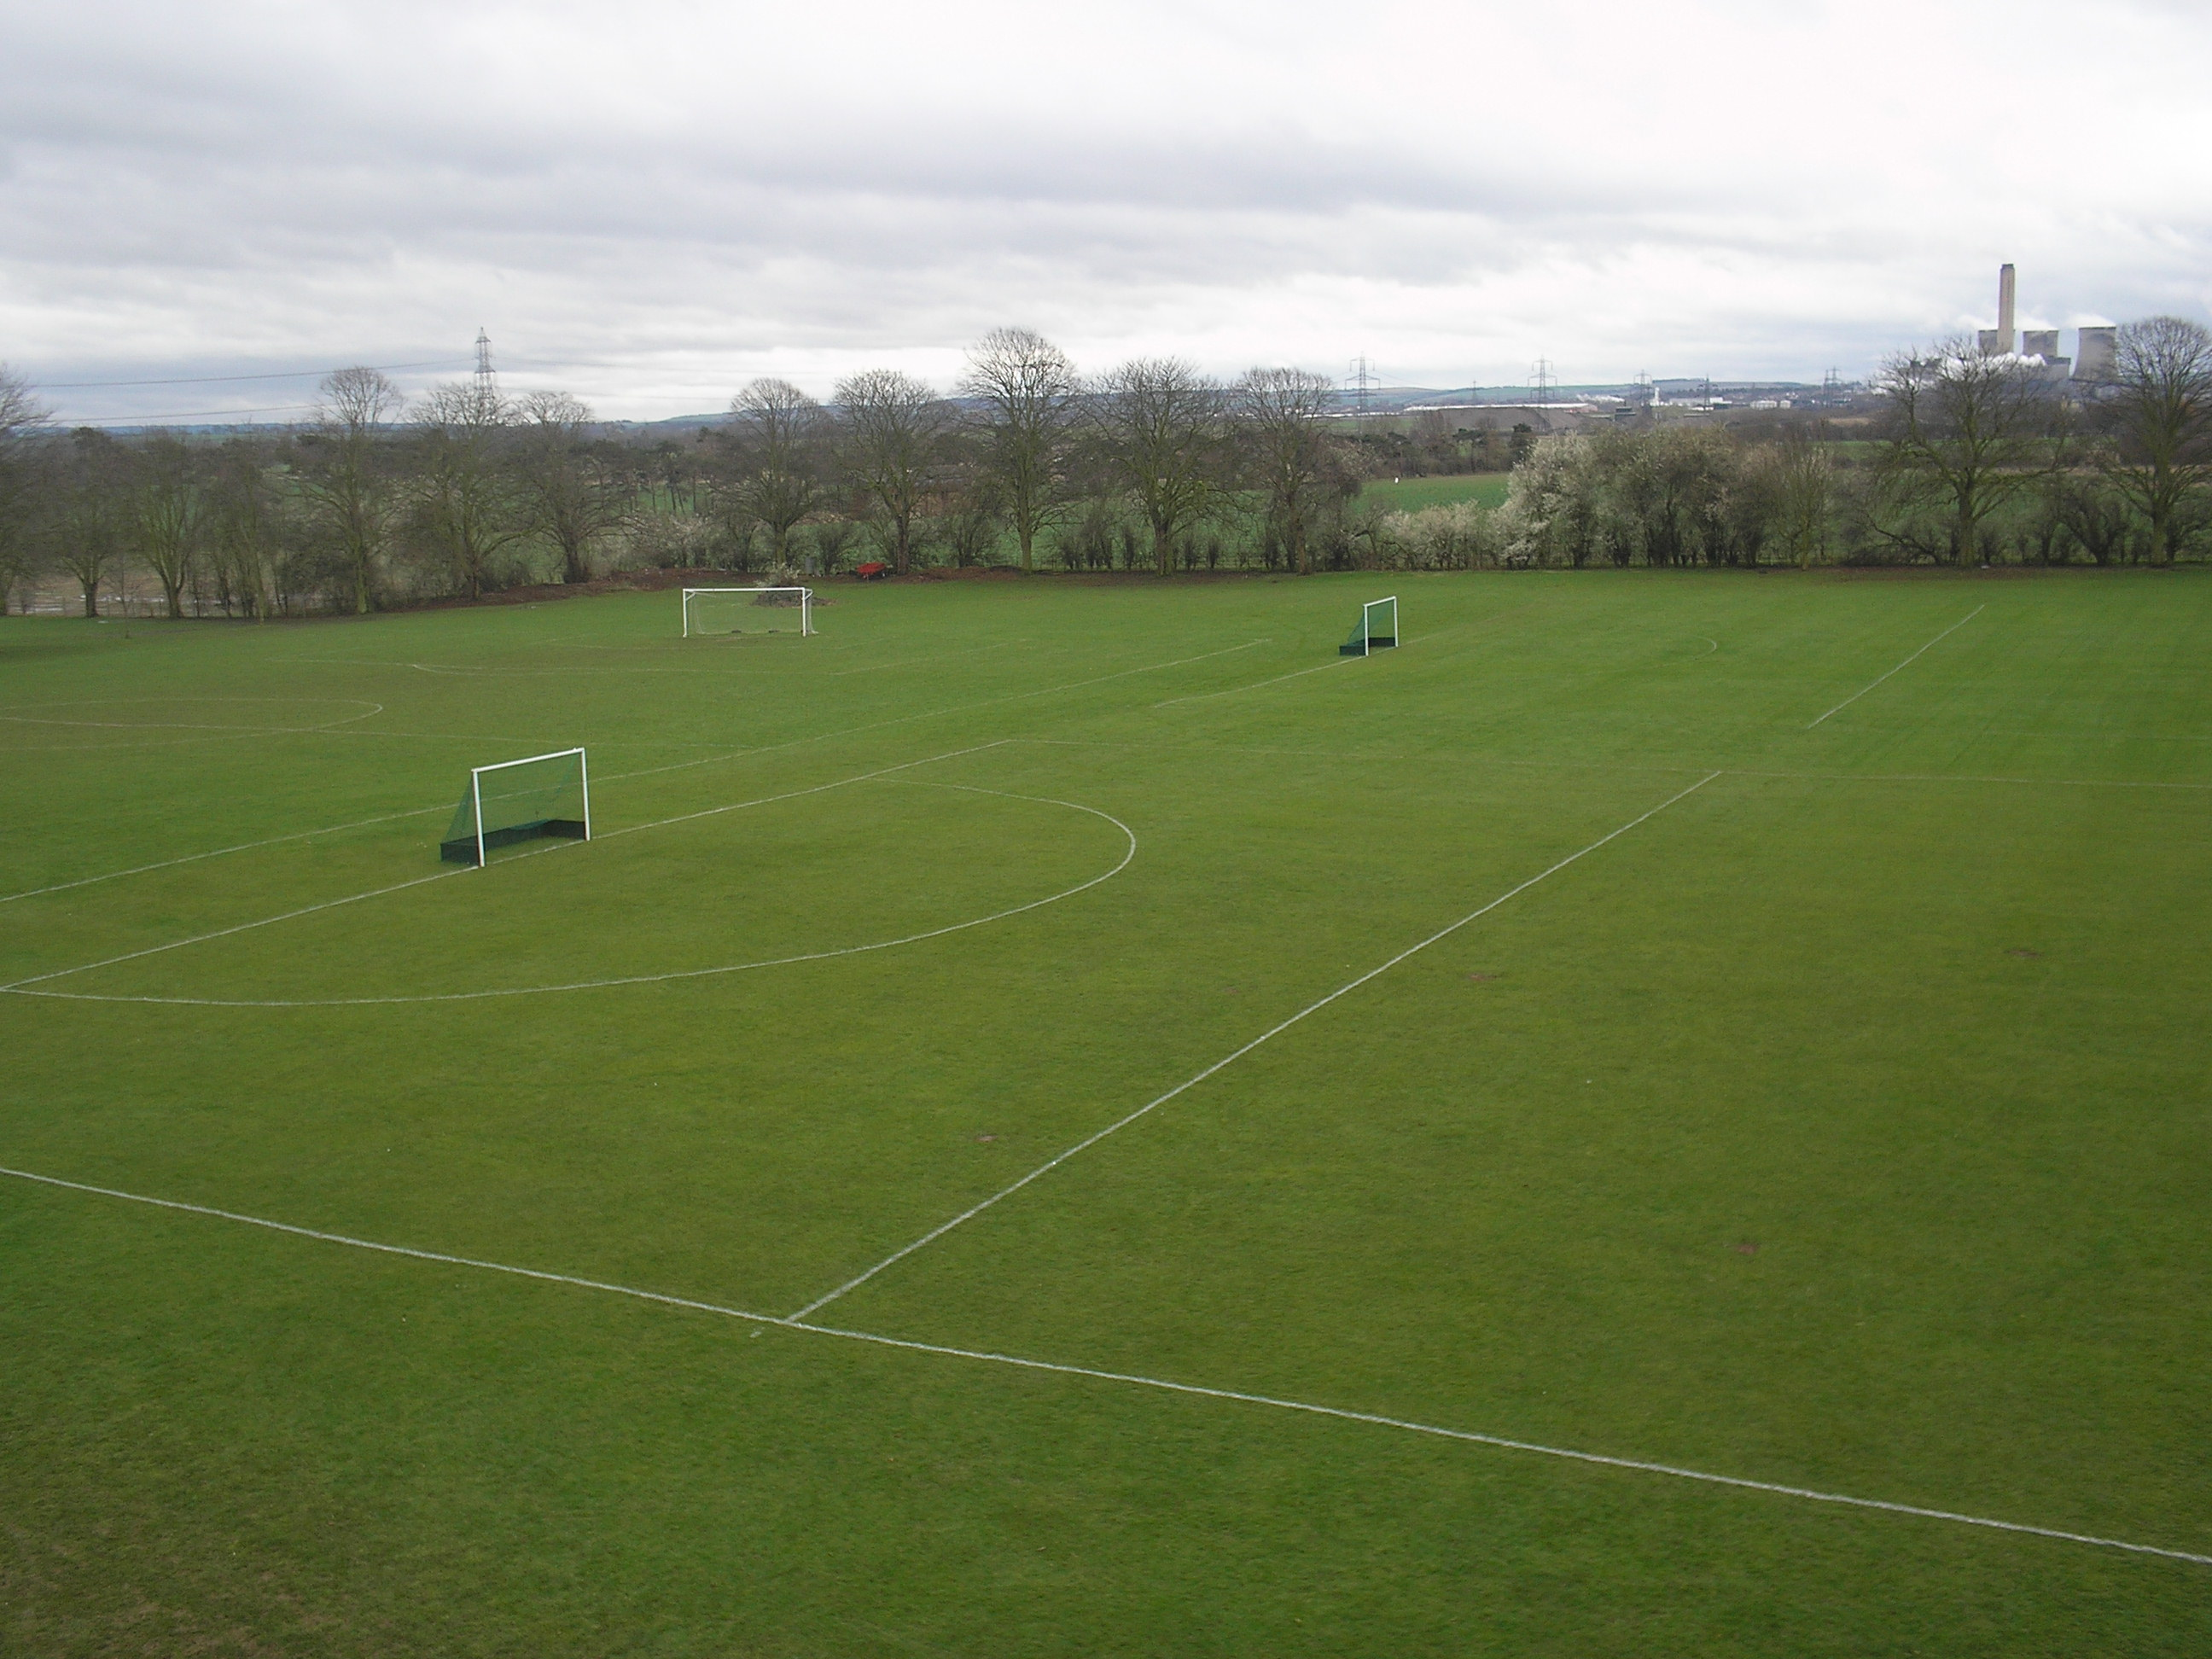 Sports pitches